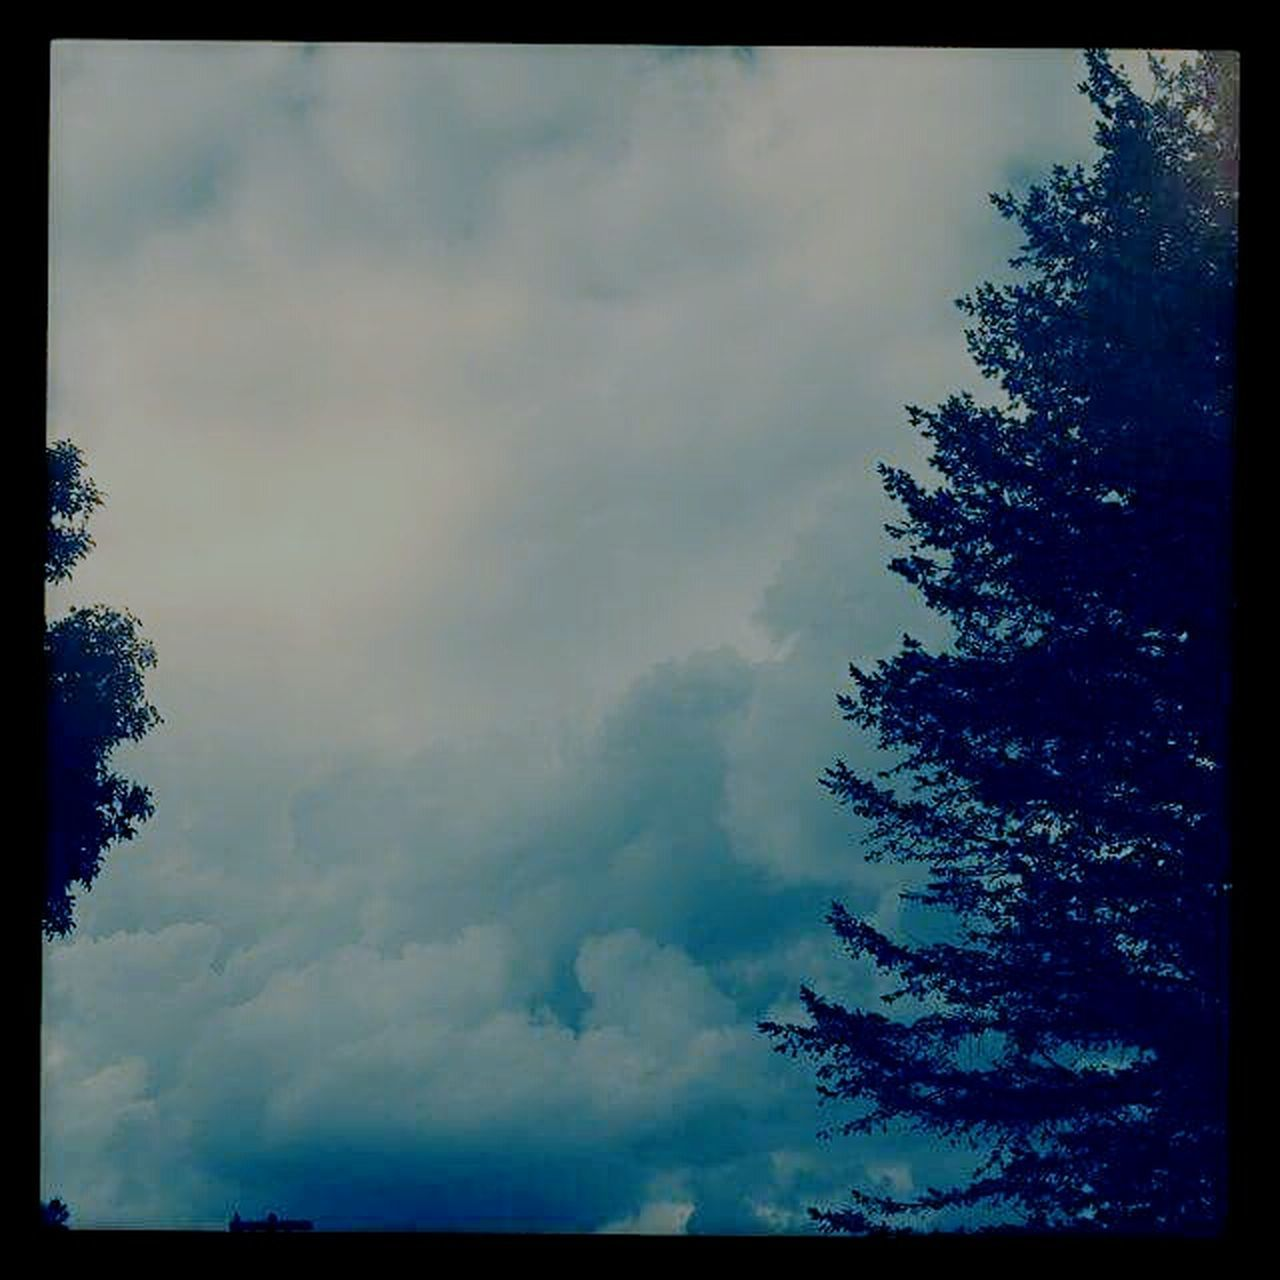 tree, nature, sky, beauty in nature, low angle view, tranquility, no people, scenics, outdoors, cloud - sky, day, scenery